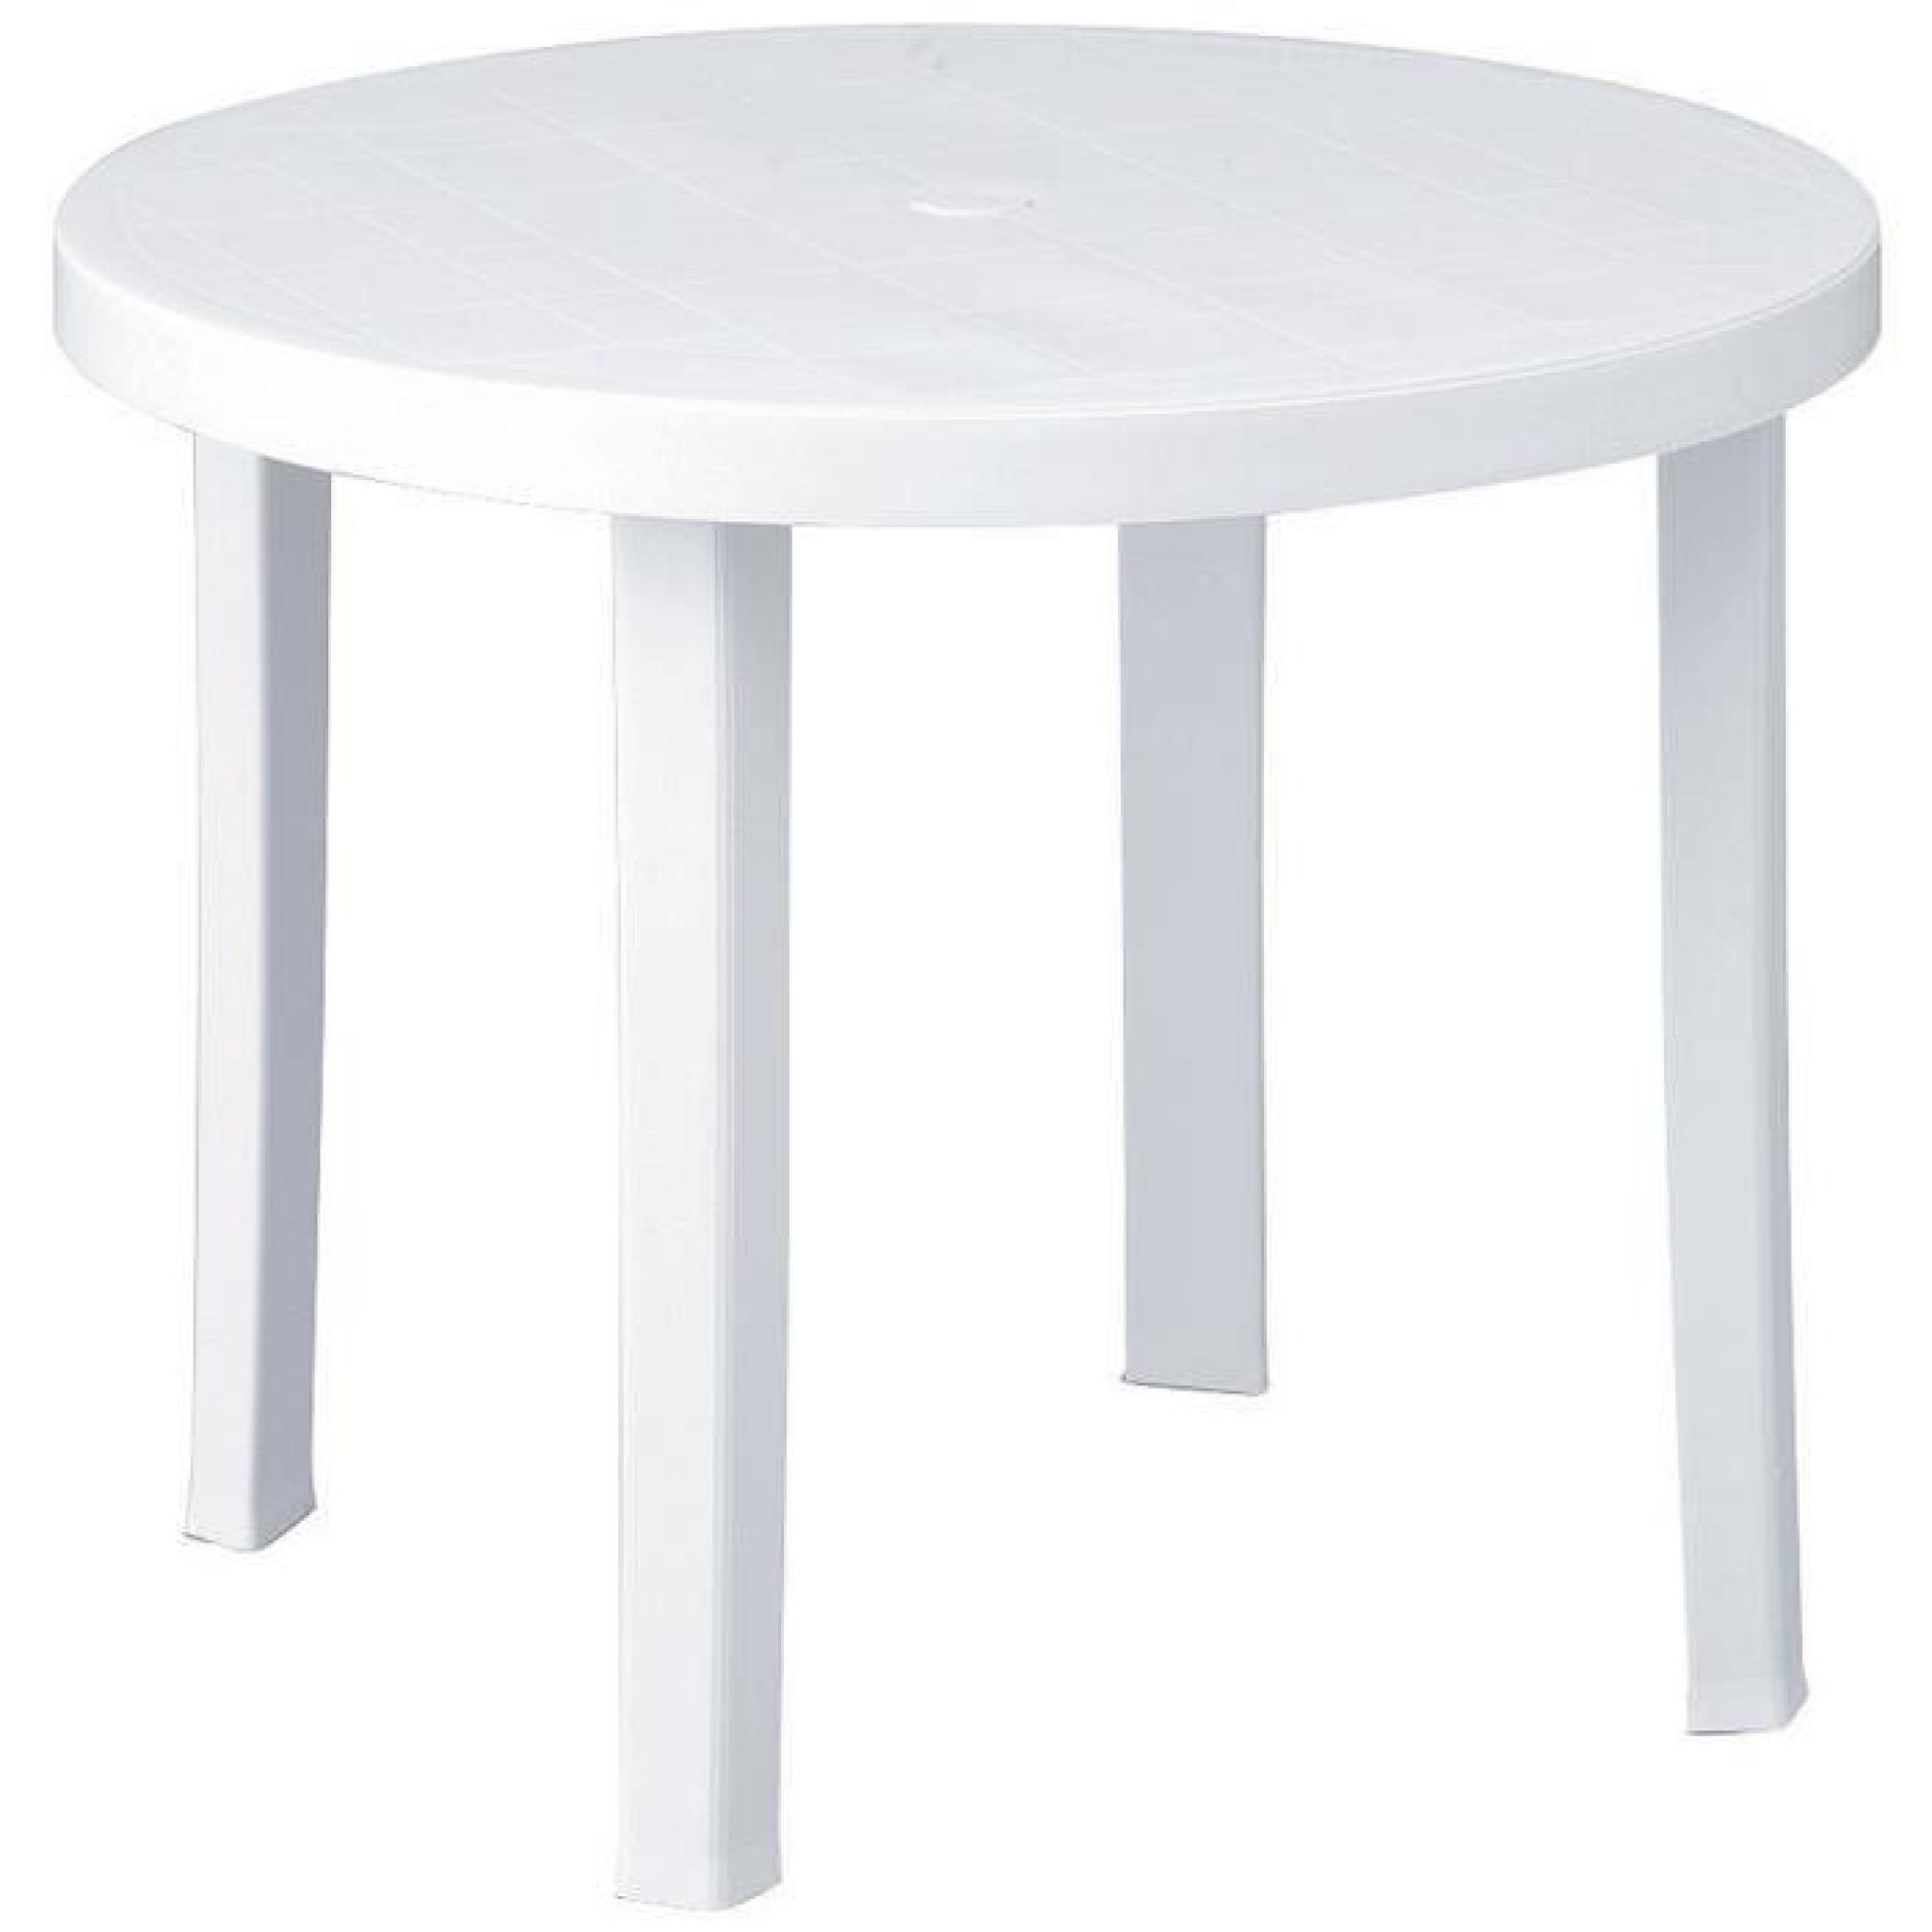 Table Ronde 90 Cm Table Ronde 90 Cm Achat Vente Table De Jardin Ronde Pas